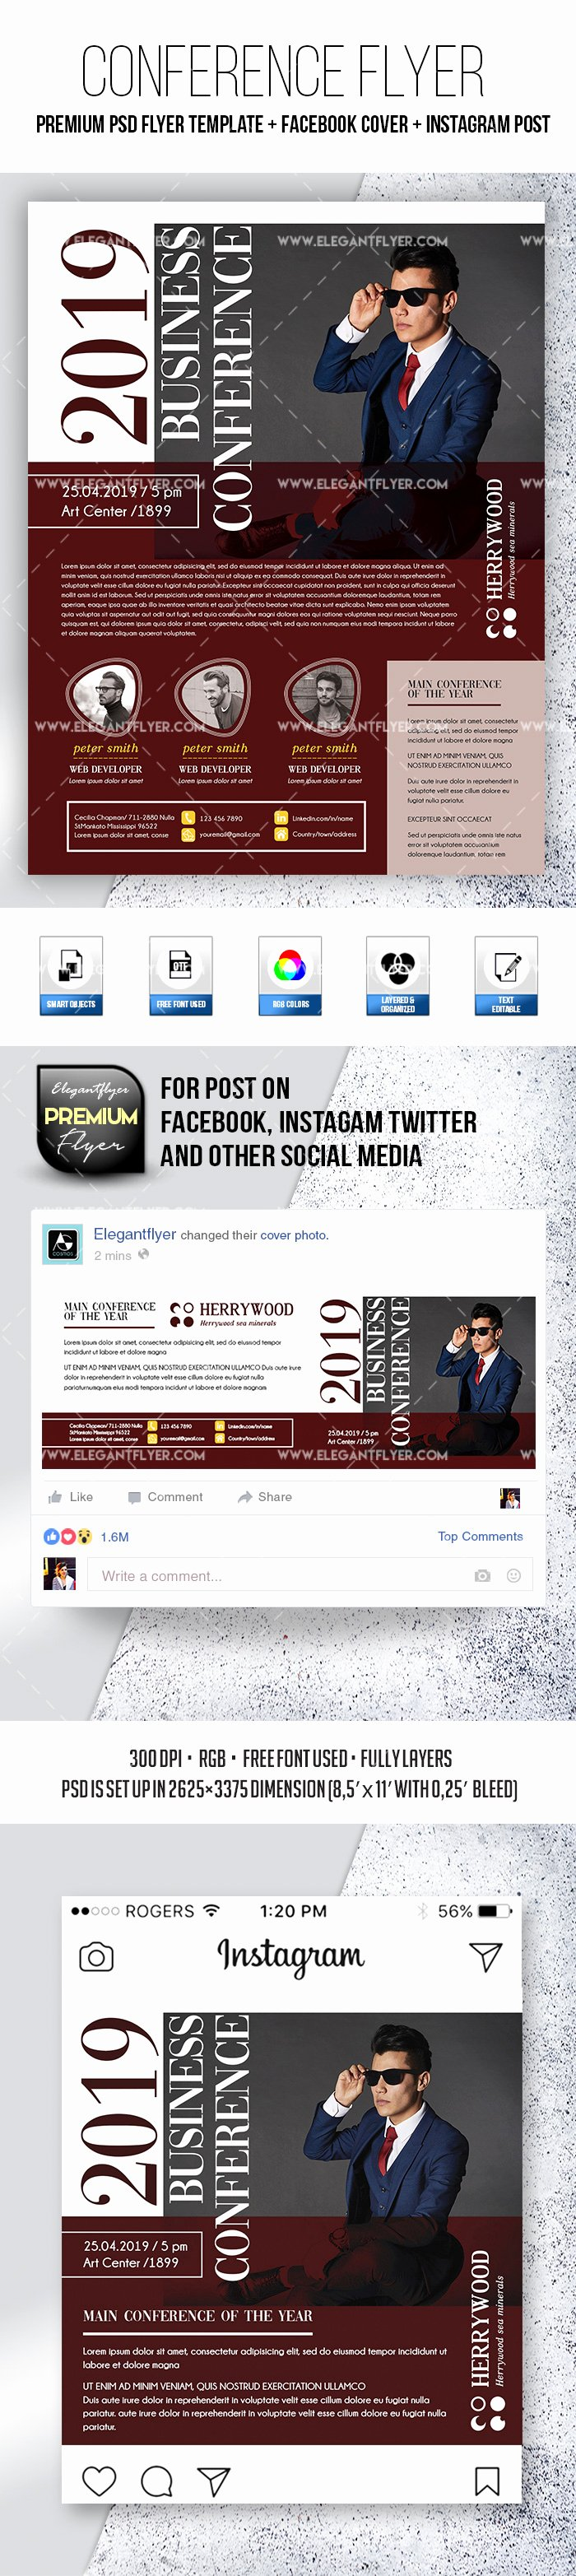 Facebook Post Template Psd New Conference 2019 – Psd Flyer Template Cover